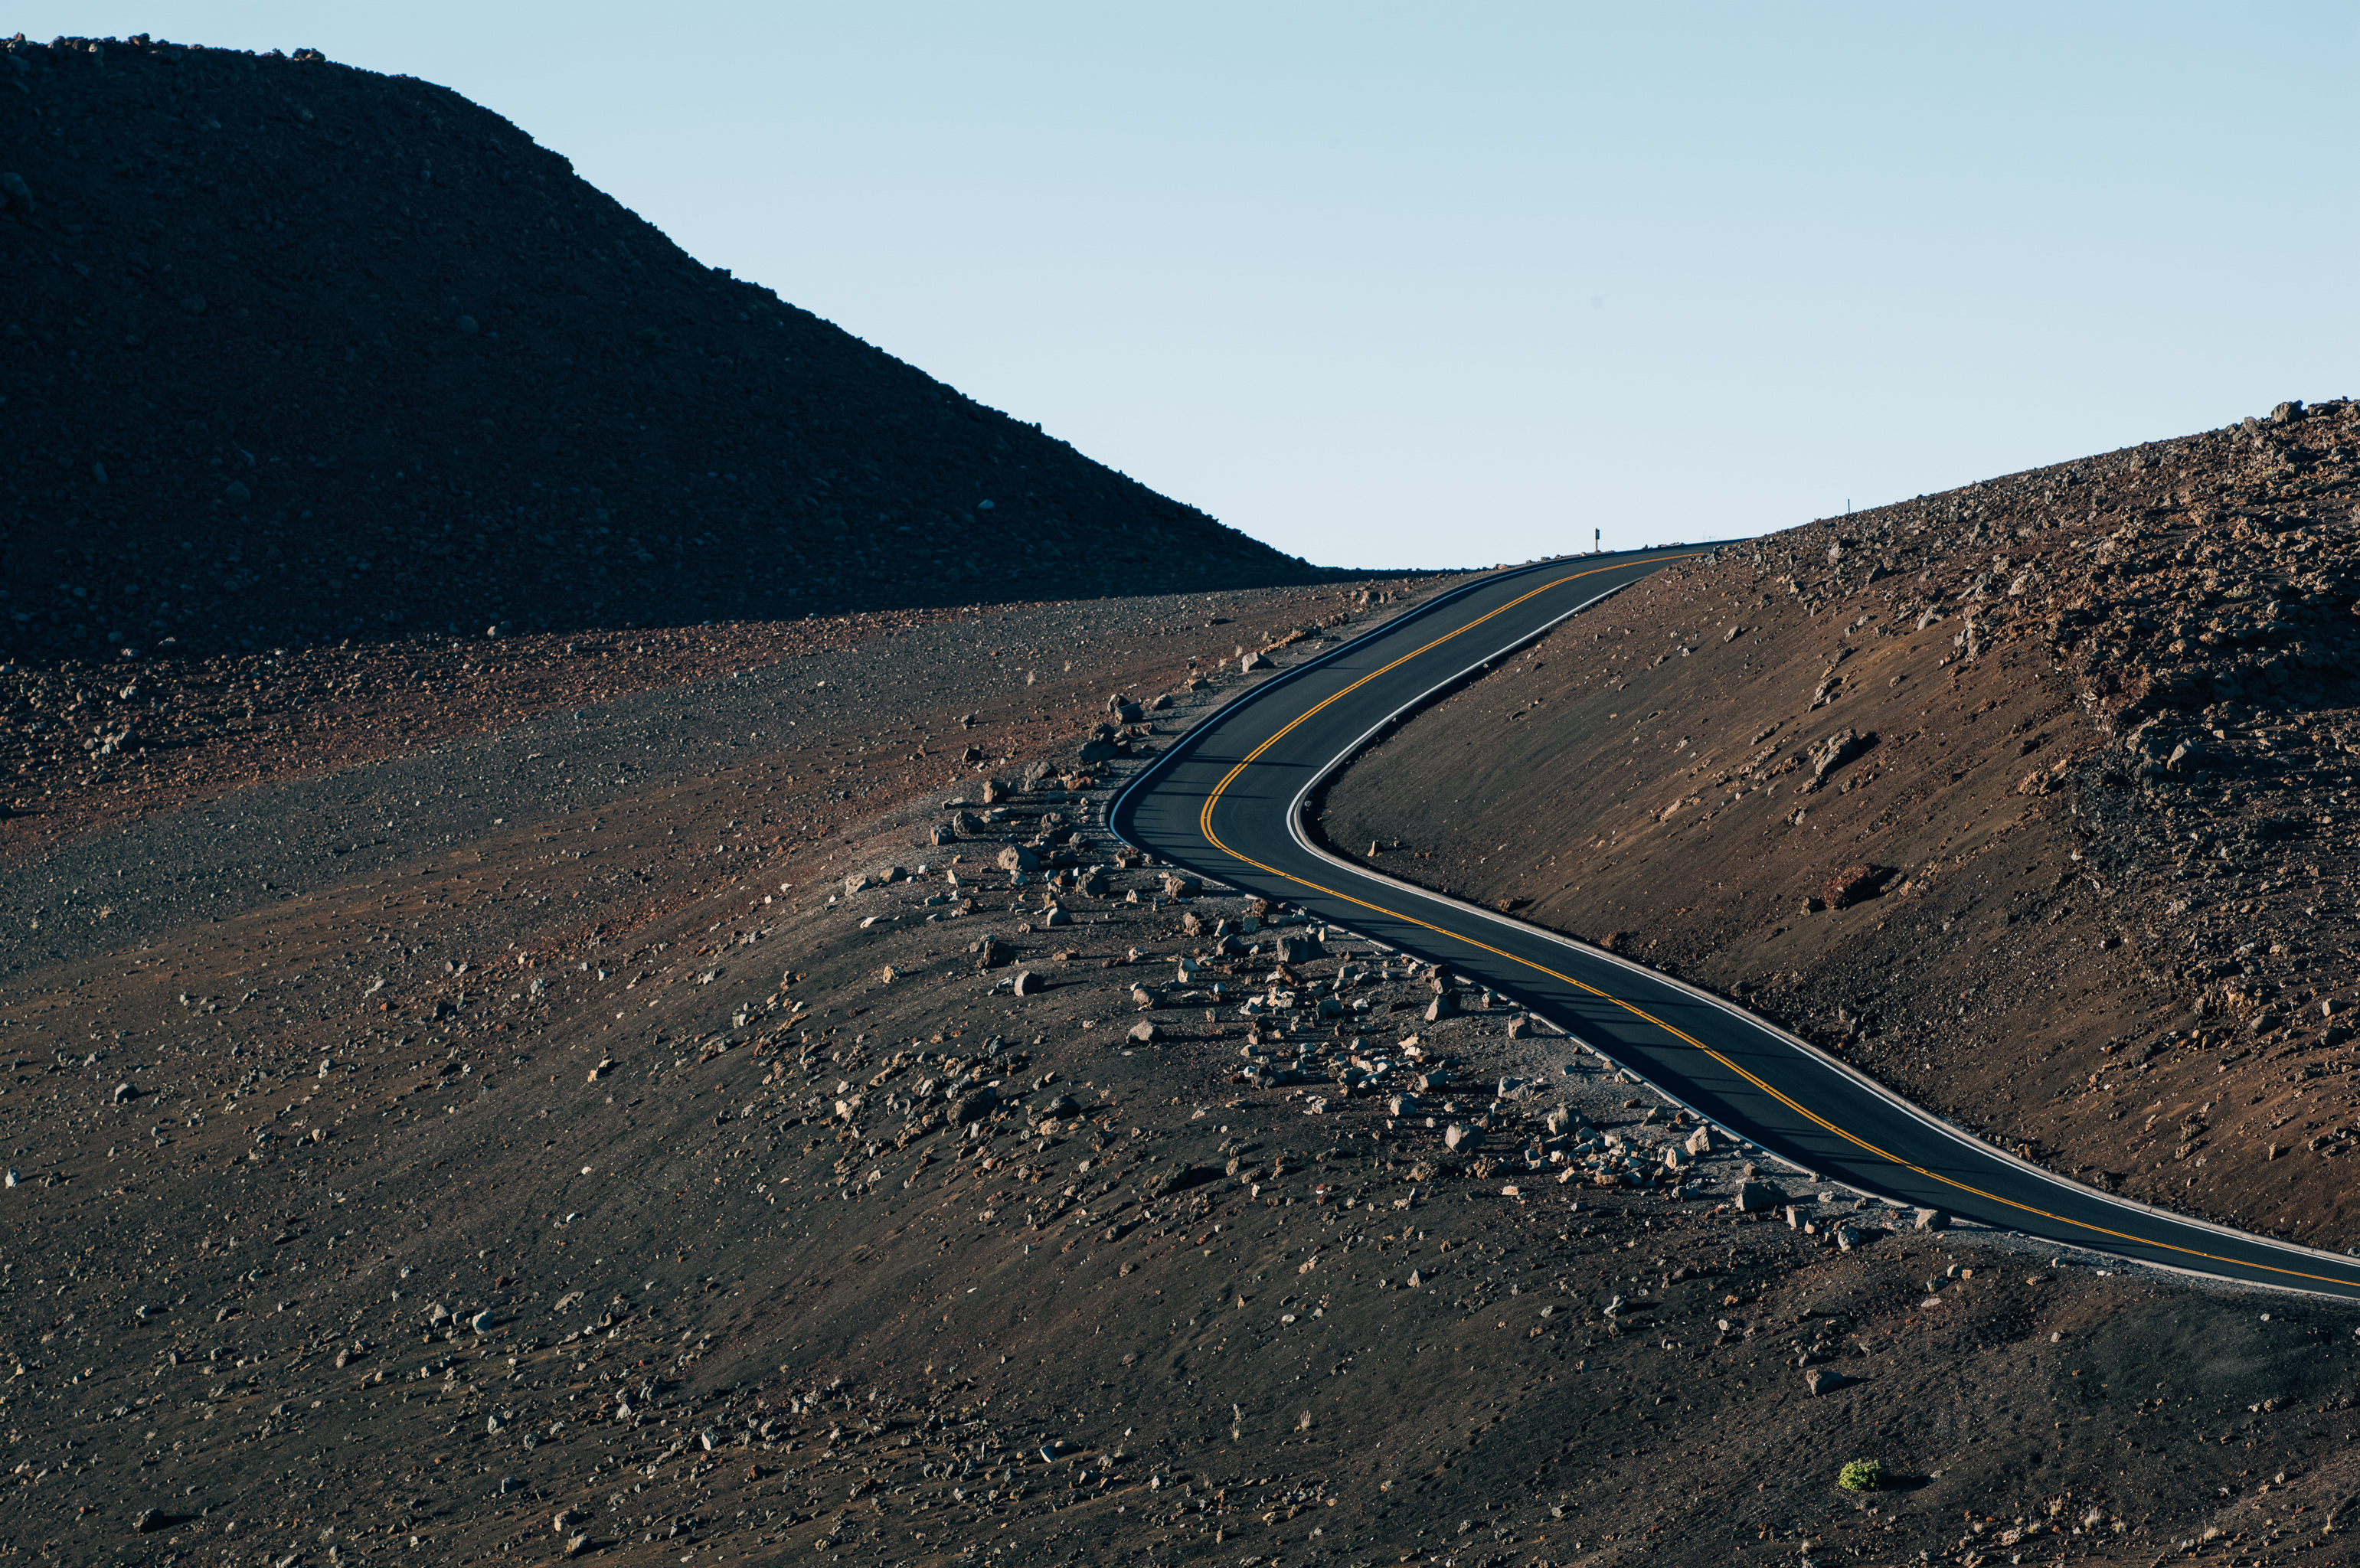 Road on top of the Haleakala, Maui, Hawaii